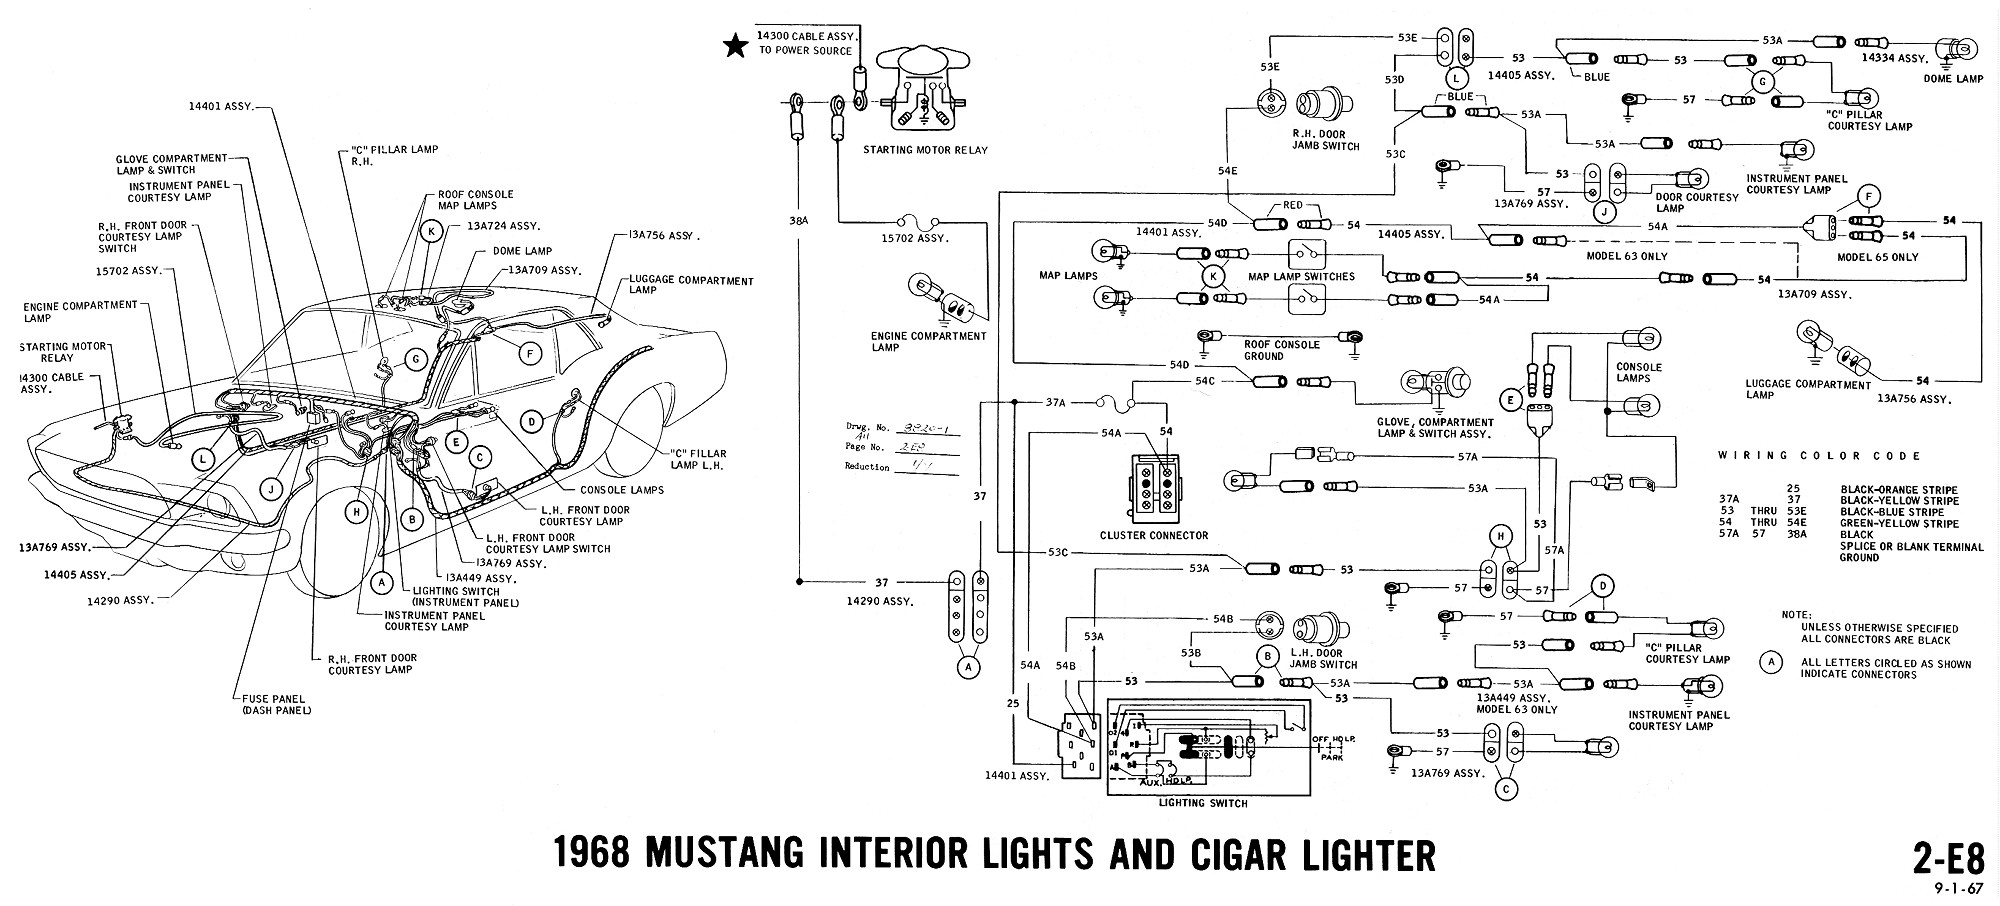 1965 mustang headlight switch wiring diagram wire center u2022 rh grooveguard co 1966 Ford Mustang Wiring Diagram 66 mustang headlight switch wiring diagram